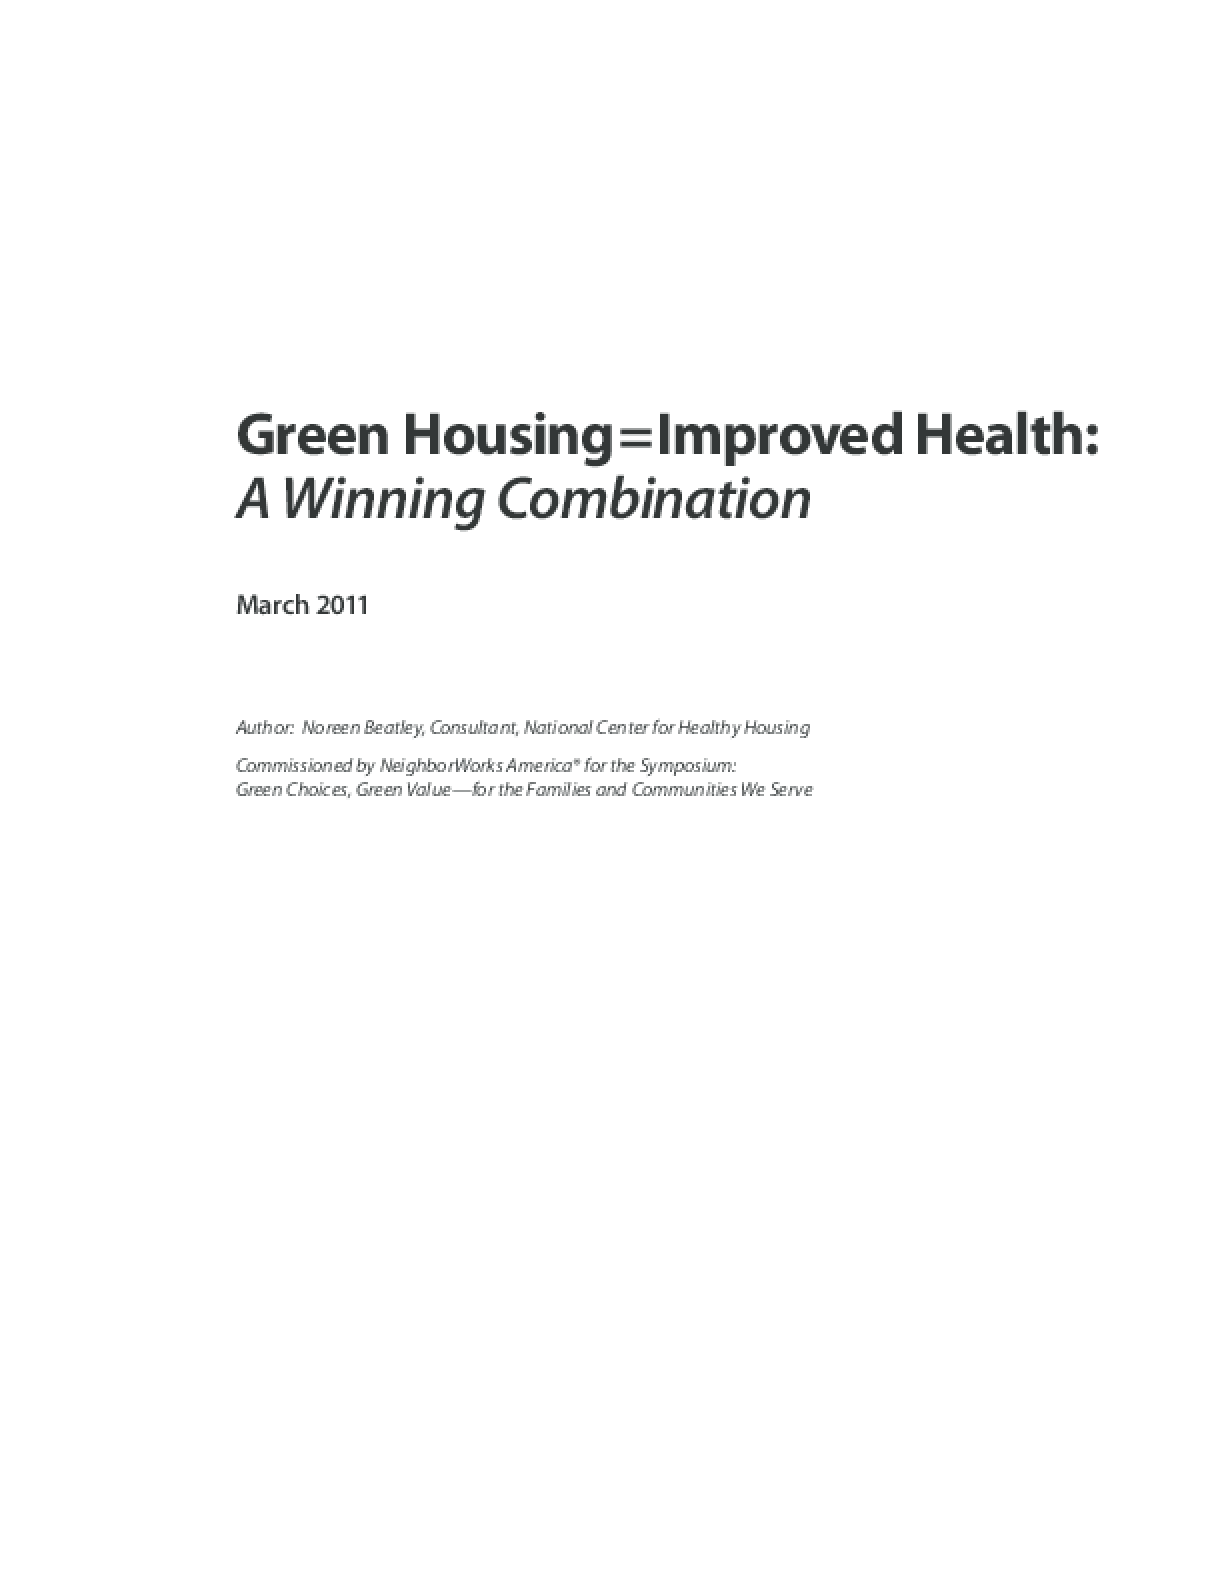 Green Housing = Improved Health: A Winning Combination